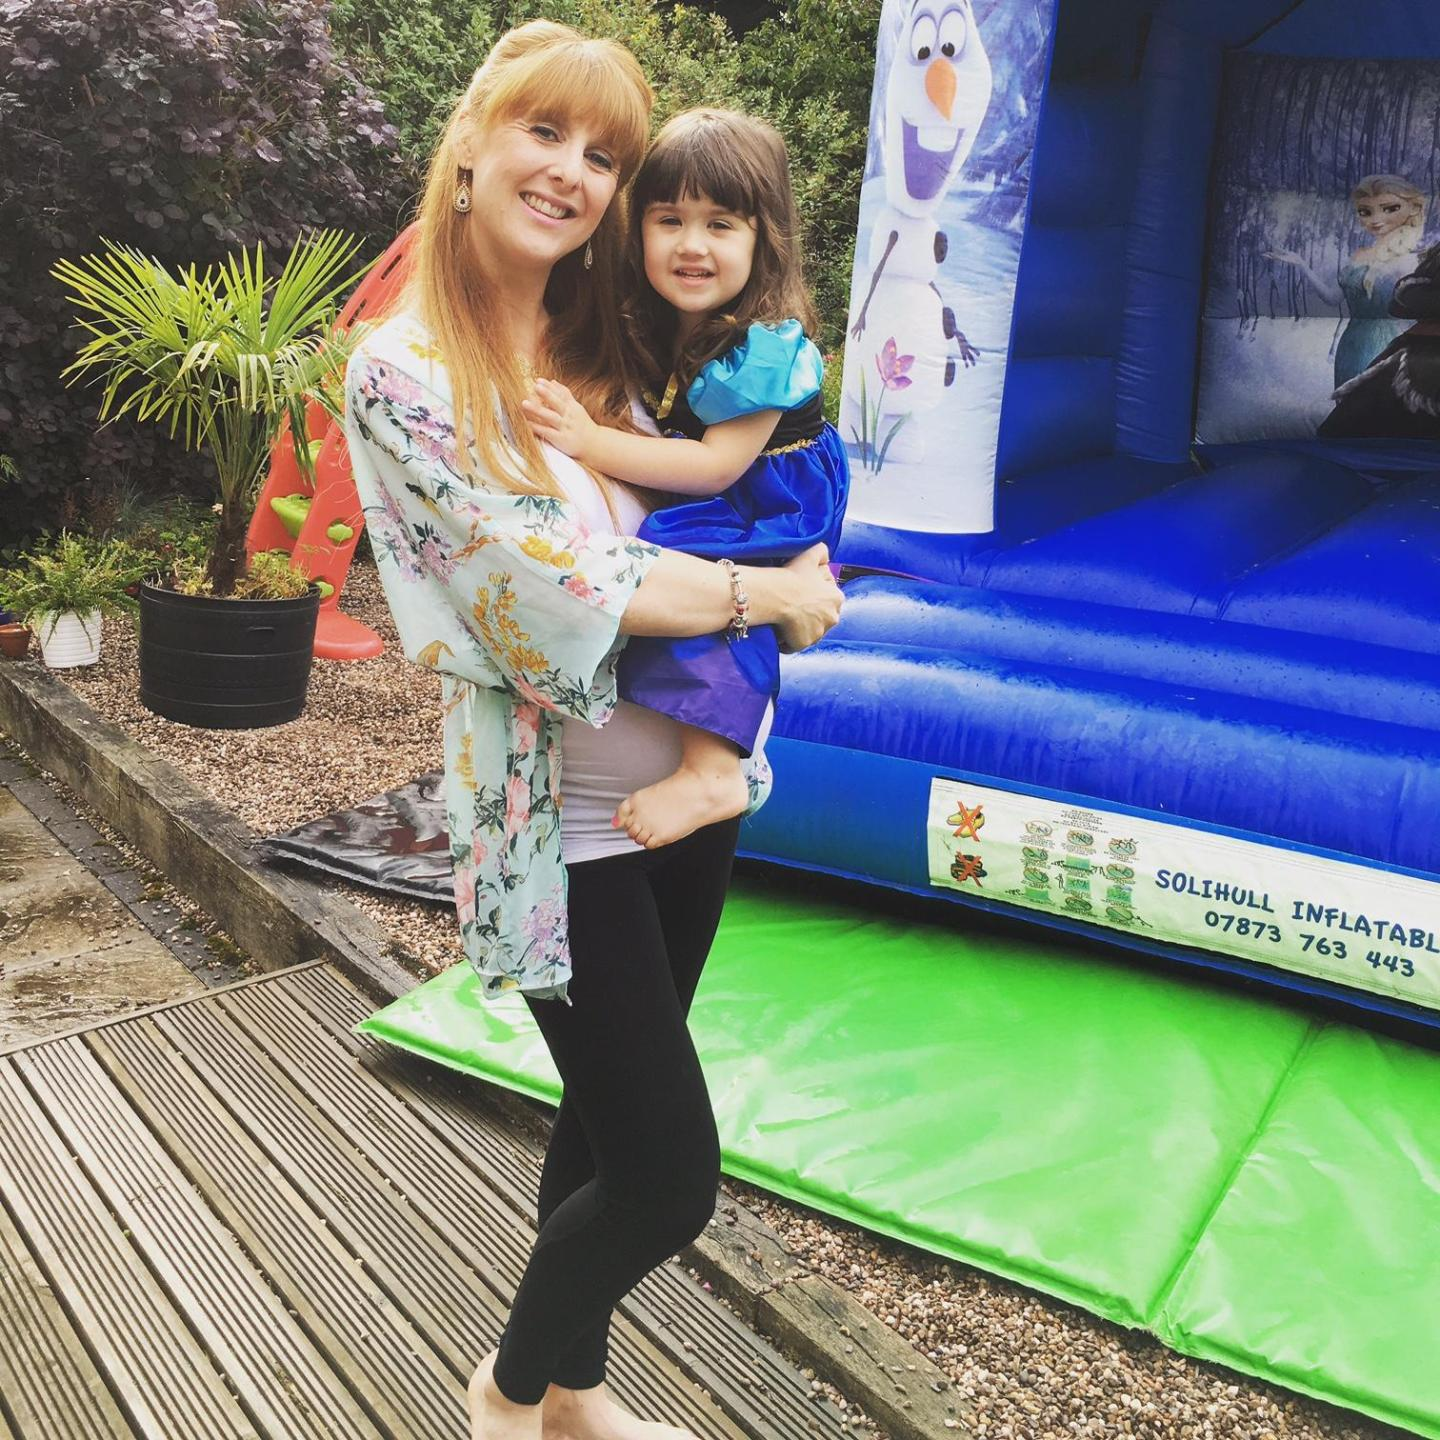 mum and daughter in front of a bouncy castle